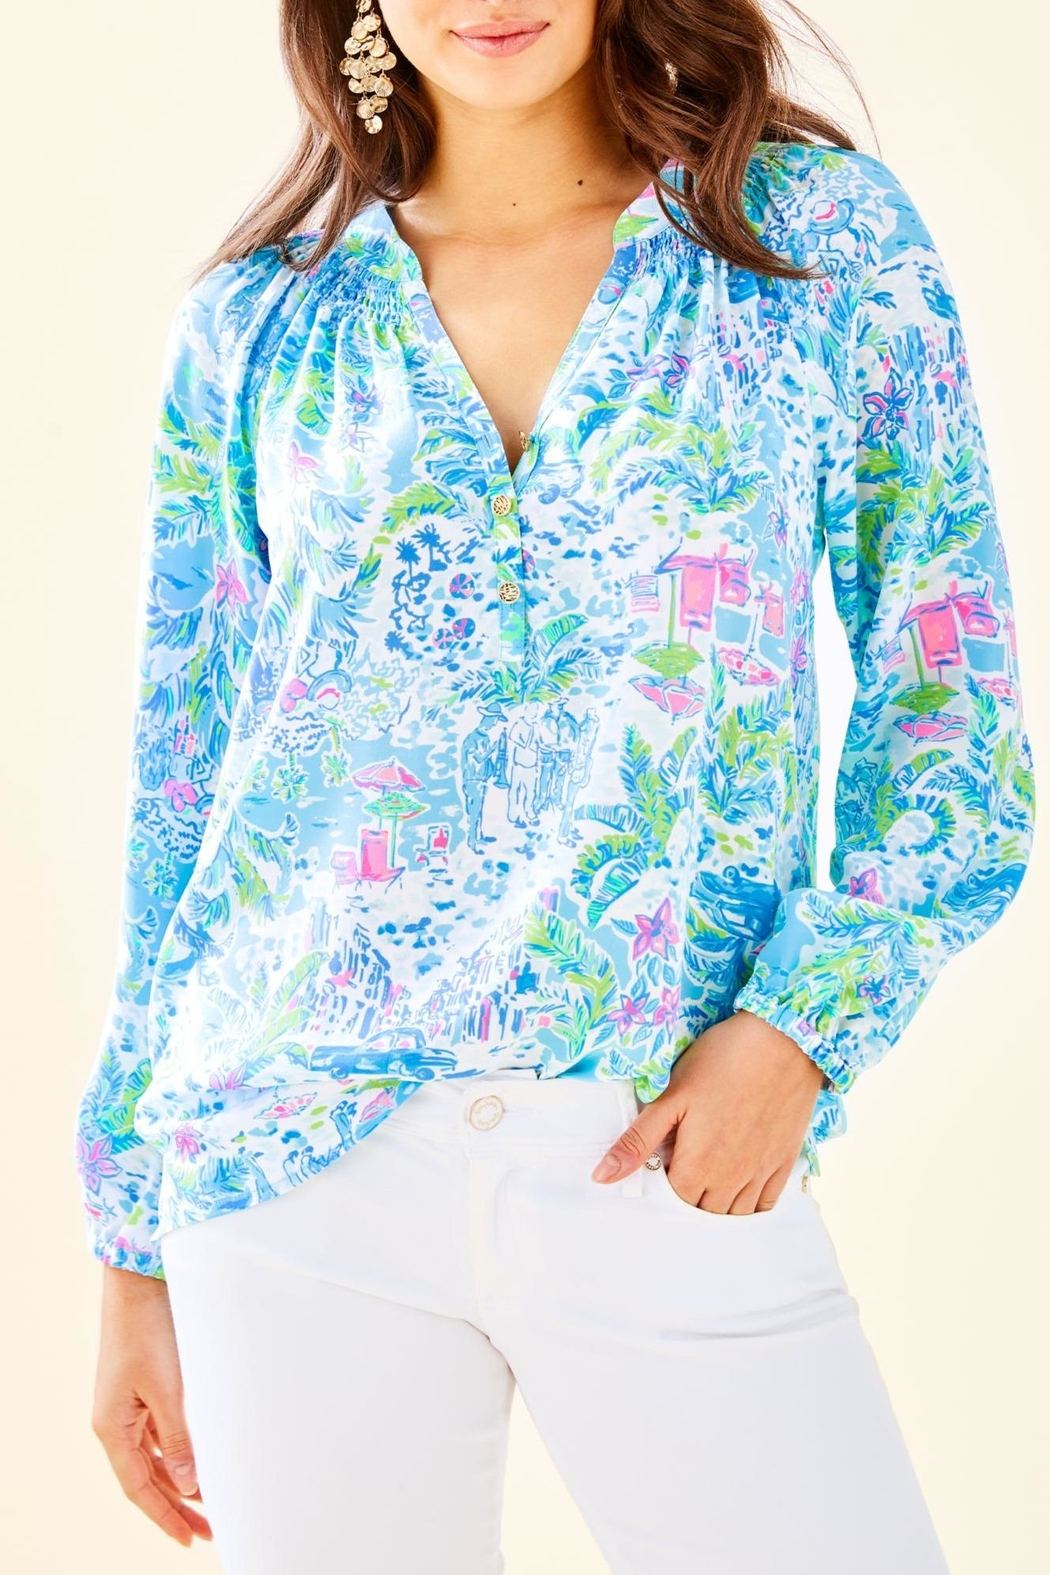 06c6fa11ebcdd2 Lilly Pulitzer Elsa Top from Sandestin Golf and Beach Resort by ...